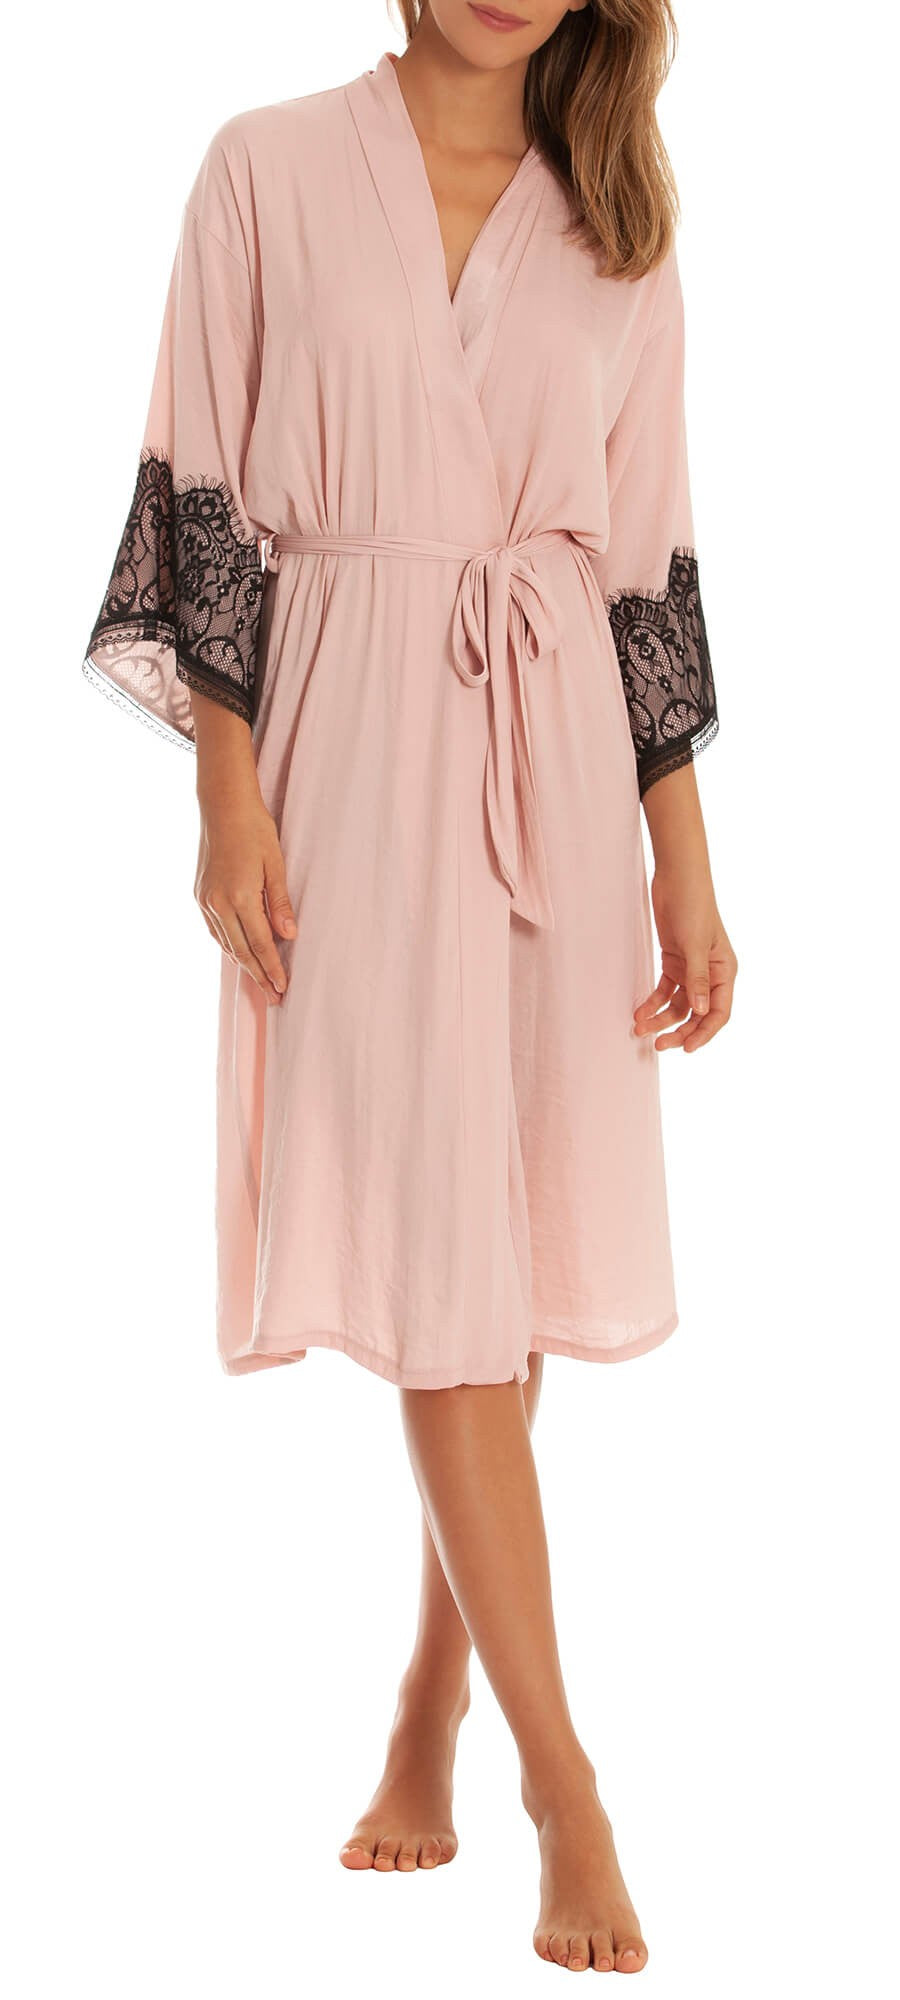 InBloom Intimates - Your Eyes Robe with Lace Blush